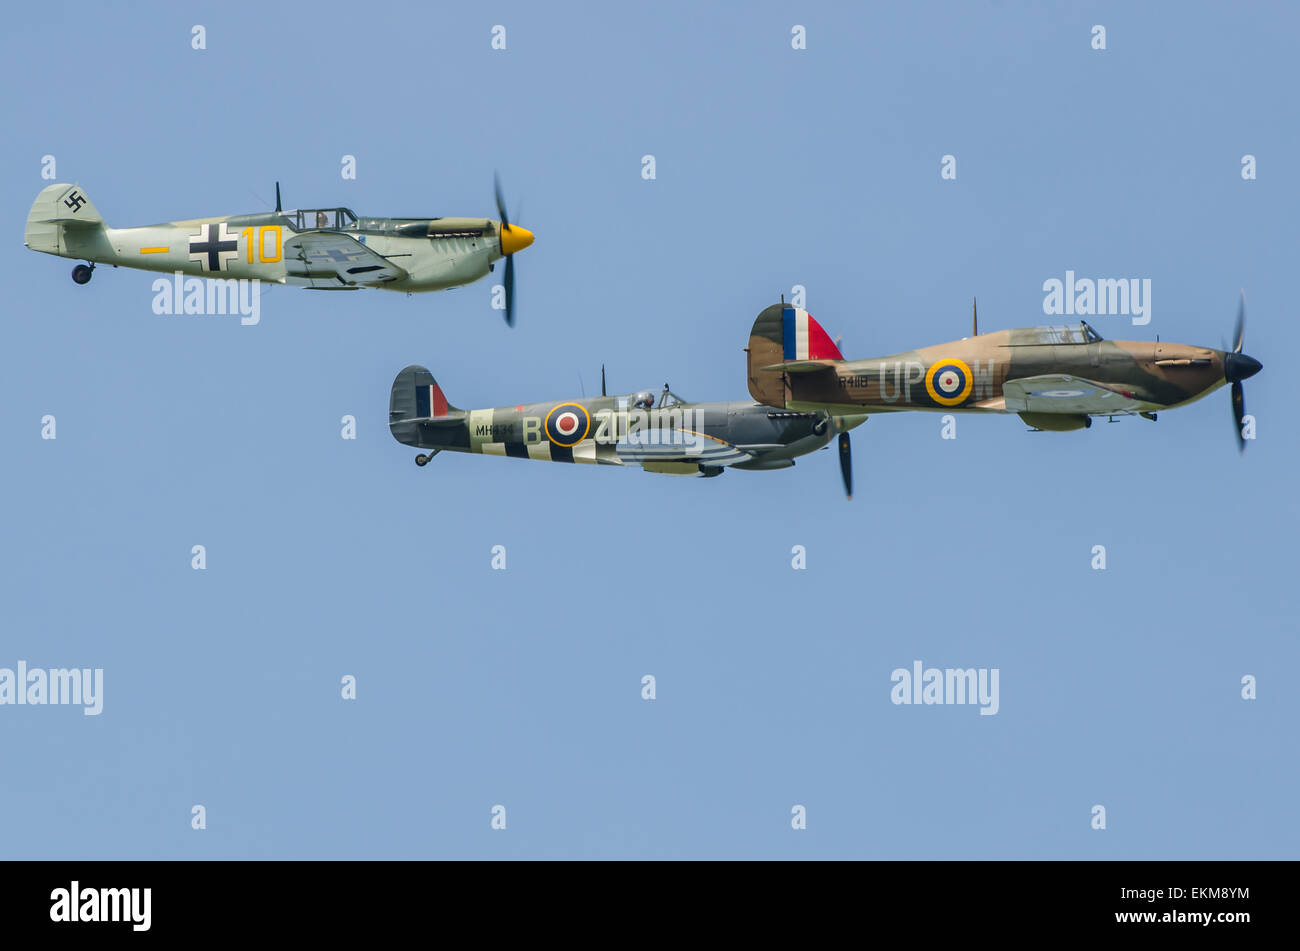 'Messershmitt Bf109' (actually a Buchon - see description) Spitfire and Hurricane in formation at an airshow. - Stock Image